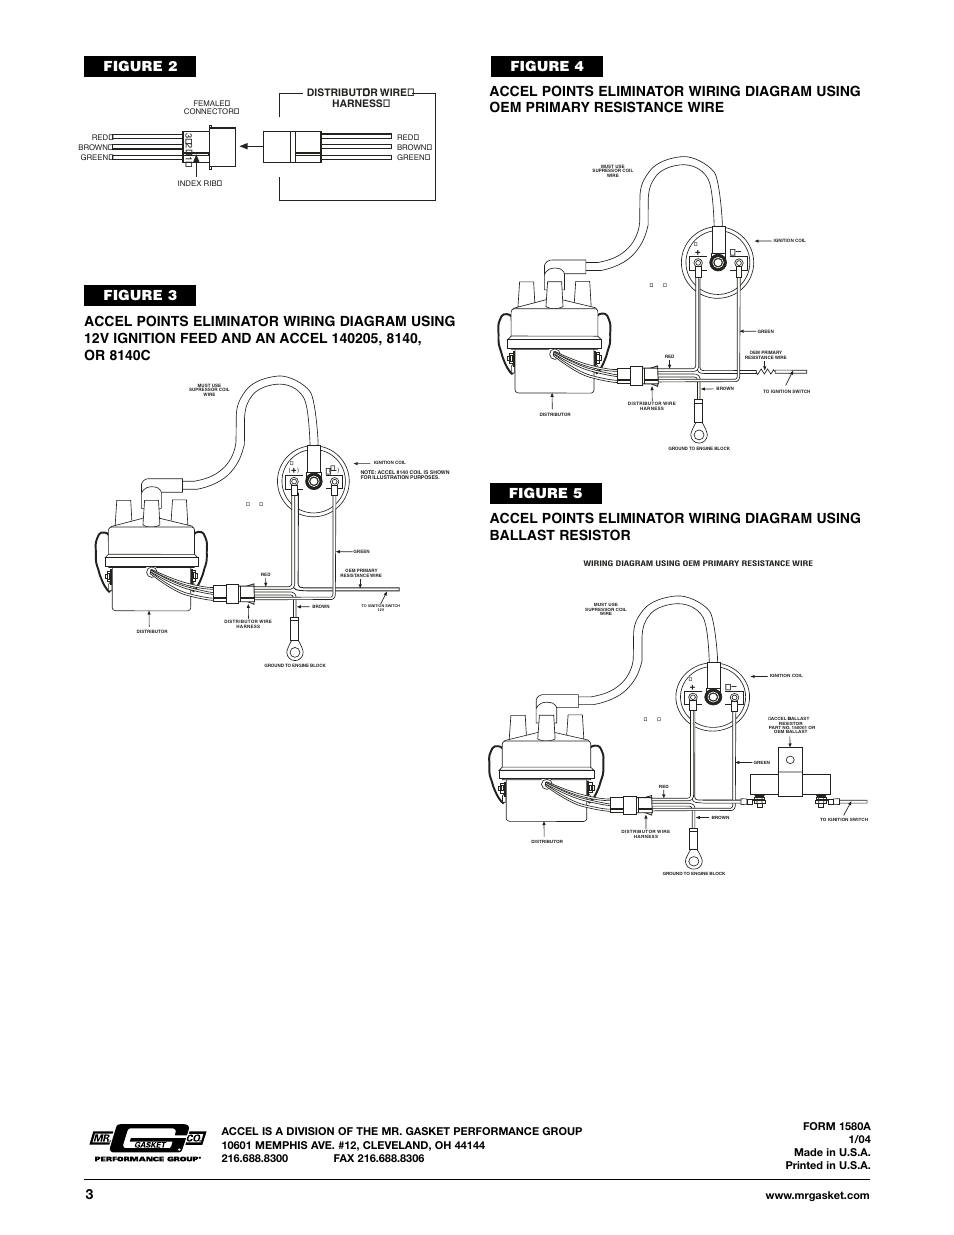 Mallory ignition wiring diagram wiring diagram on mallory 685 ignition wiring diagram Mallory Unilite Distributor Wiring Diagram MSD 6AL Wiring-Diagram